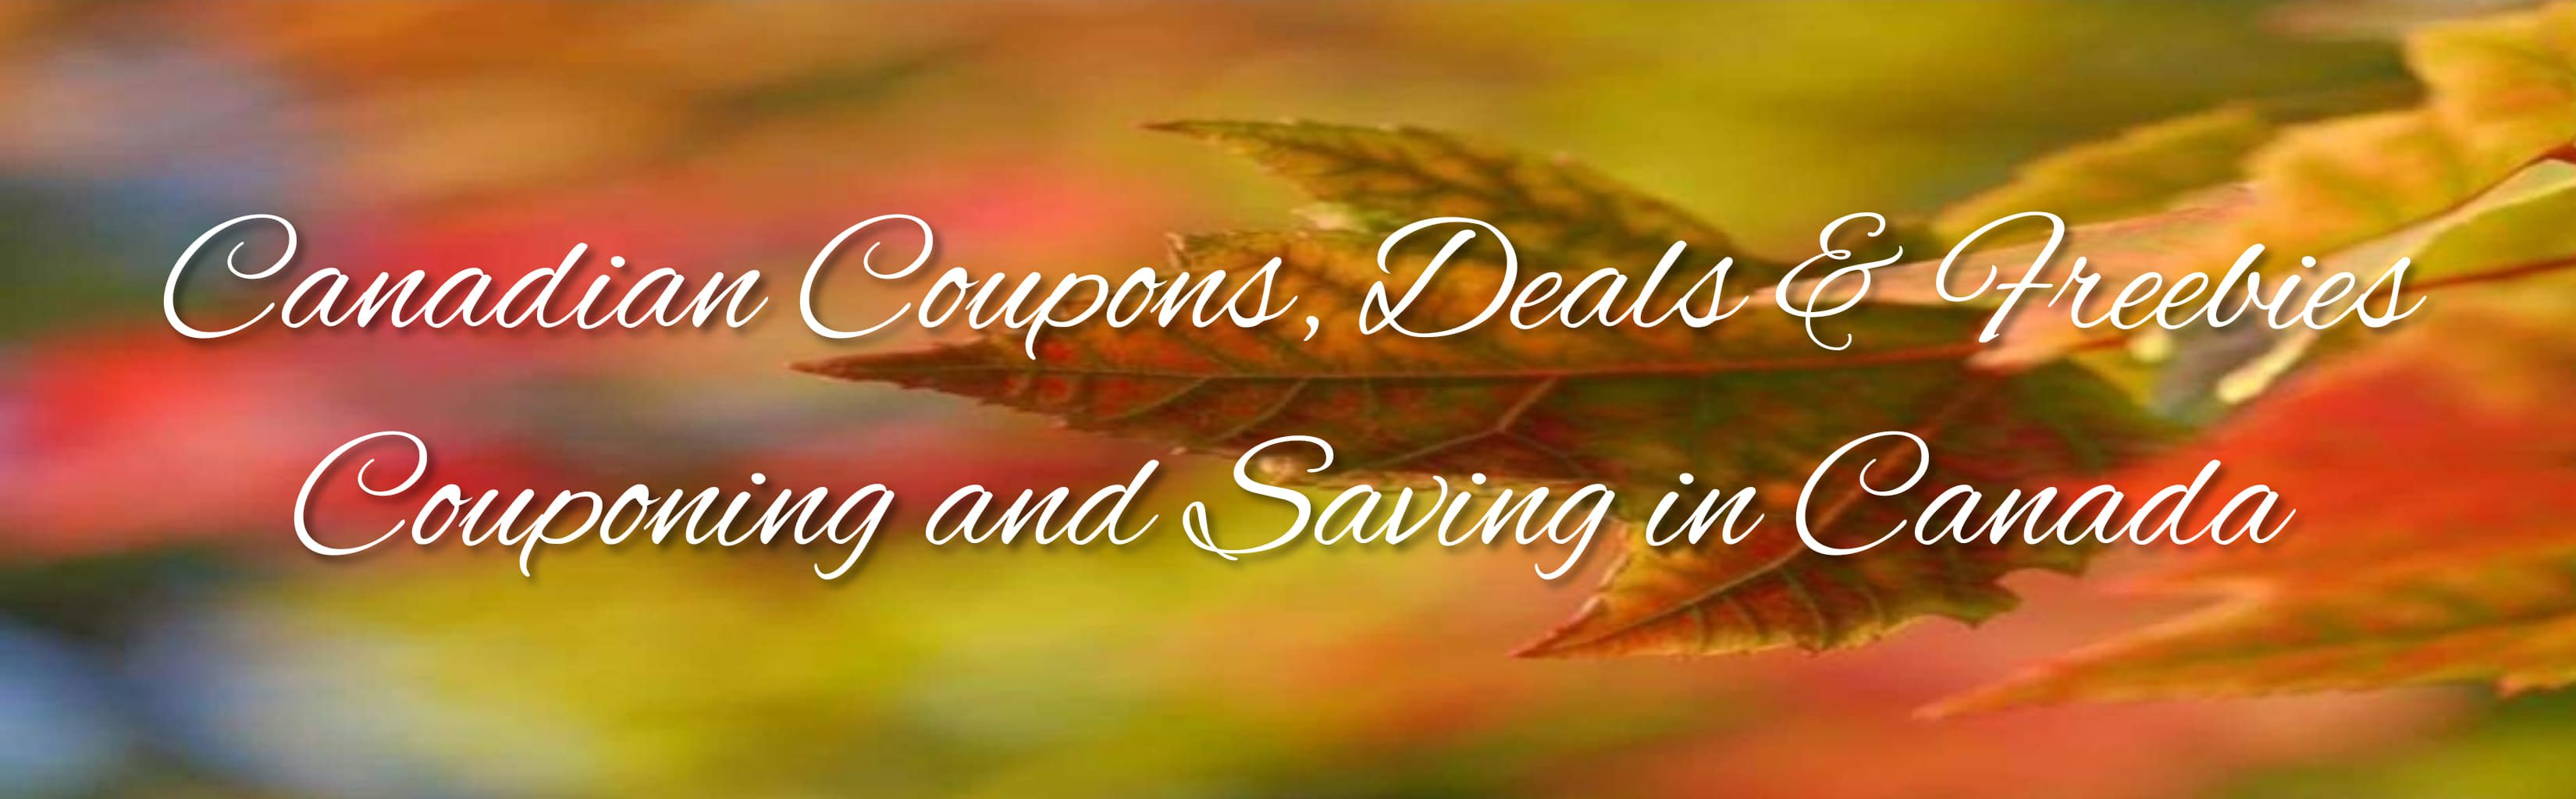 Canadian Coupons, Deals and Freebies